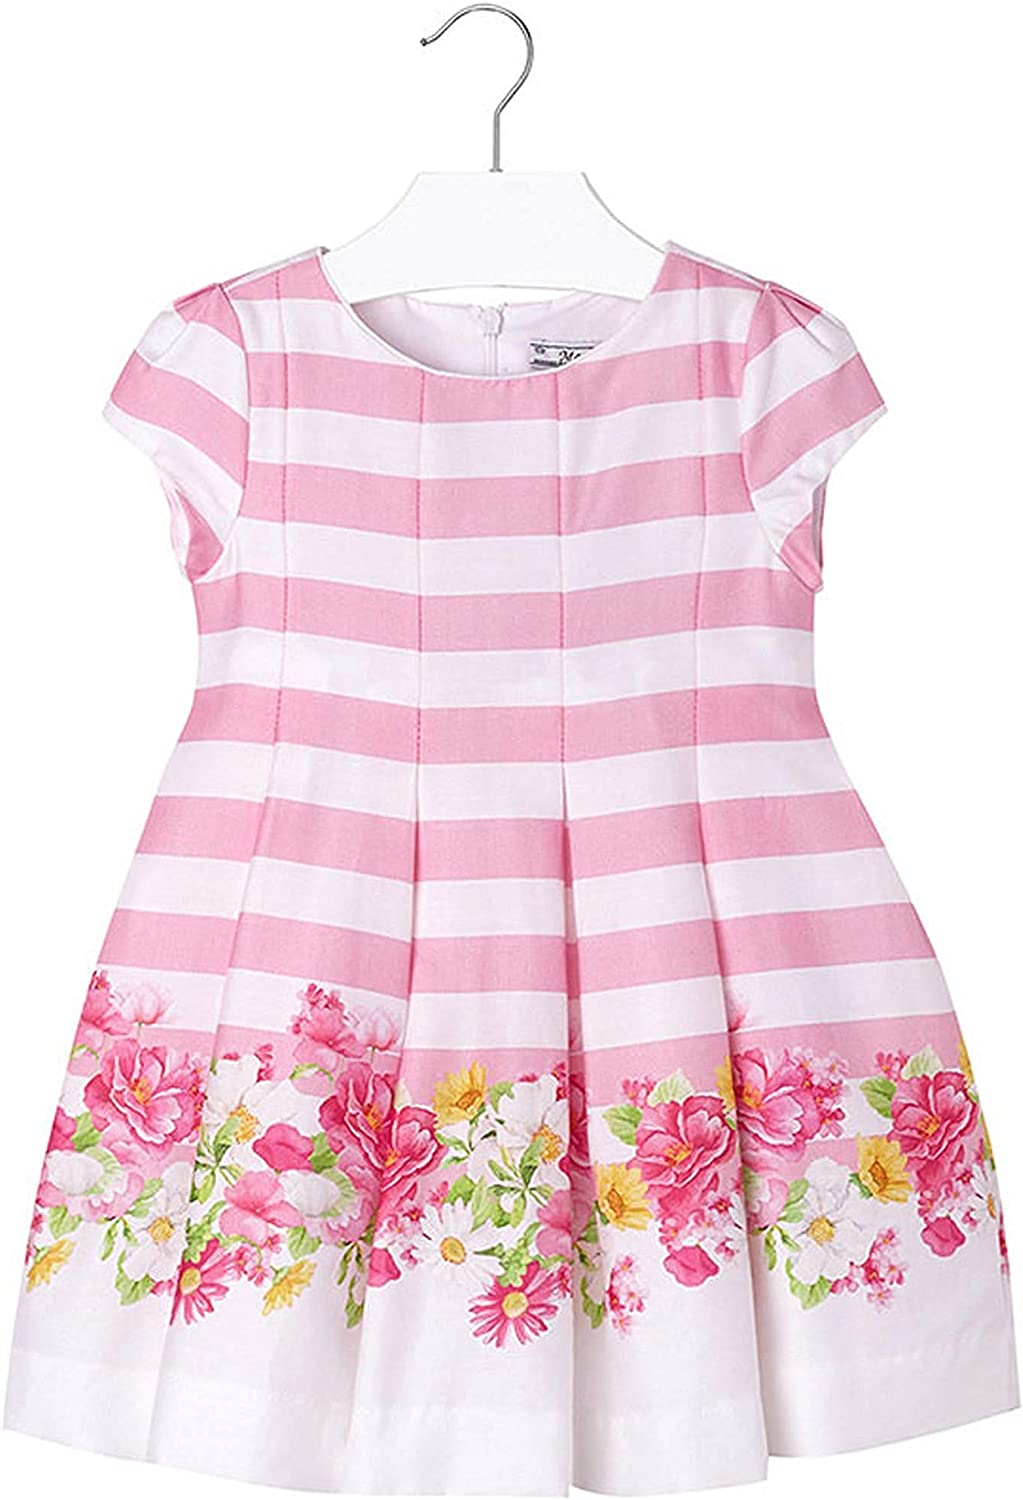 Mayoral Chic Little Girls 2-9 Pink/White Striped Floral Border Cotton Social Dress